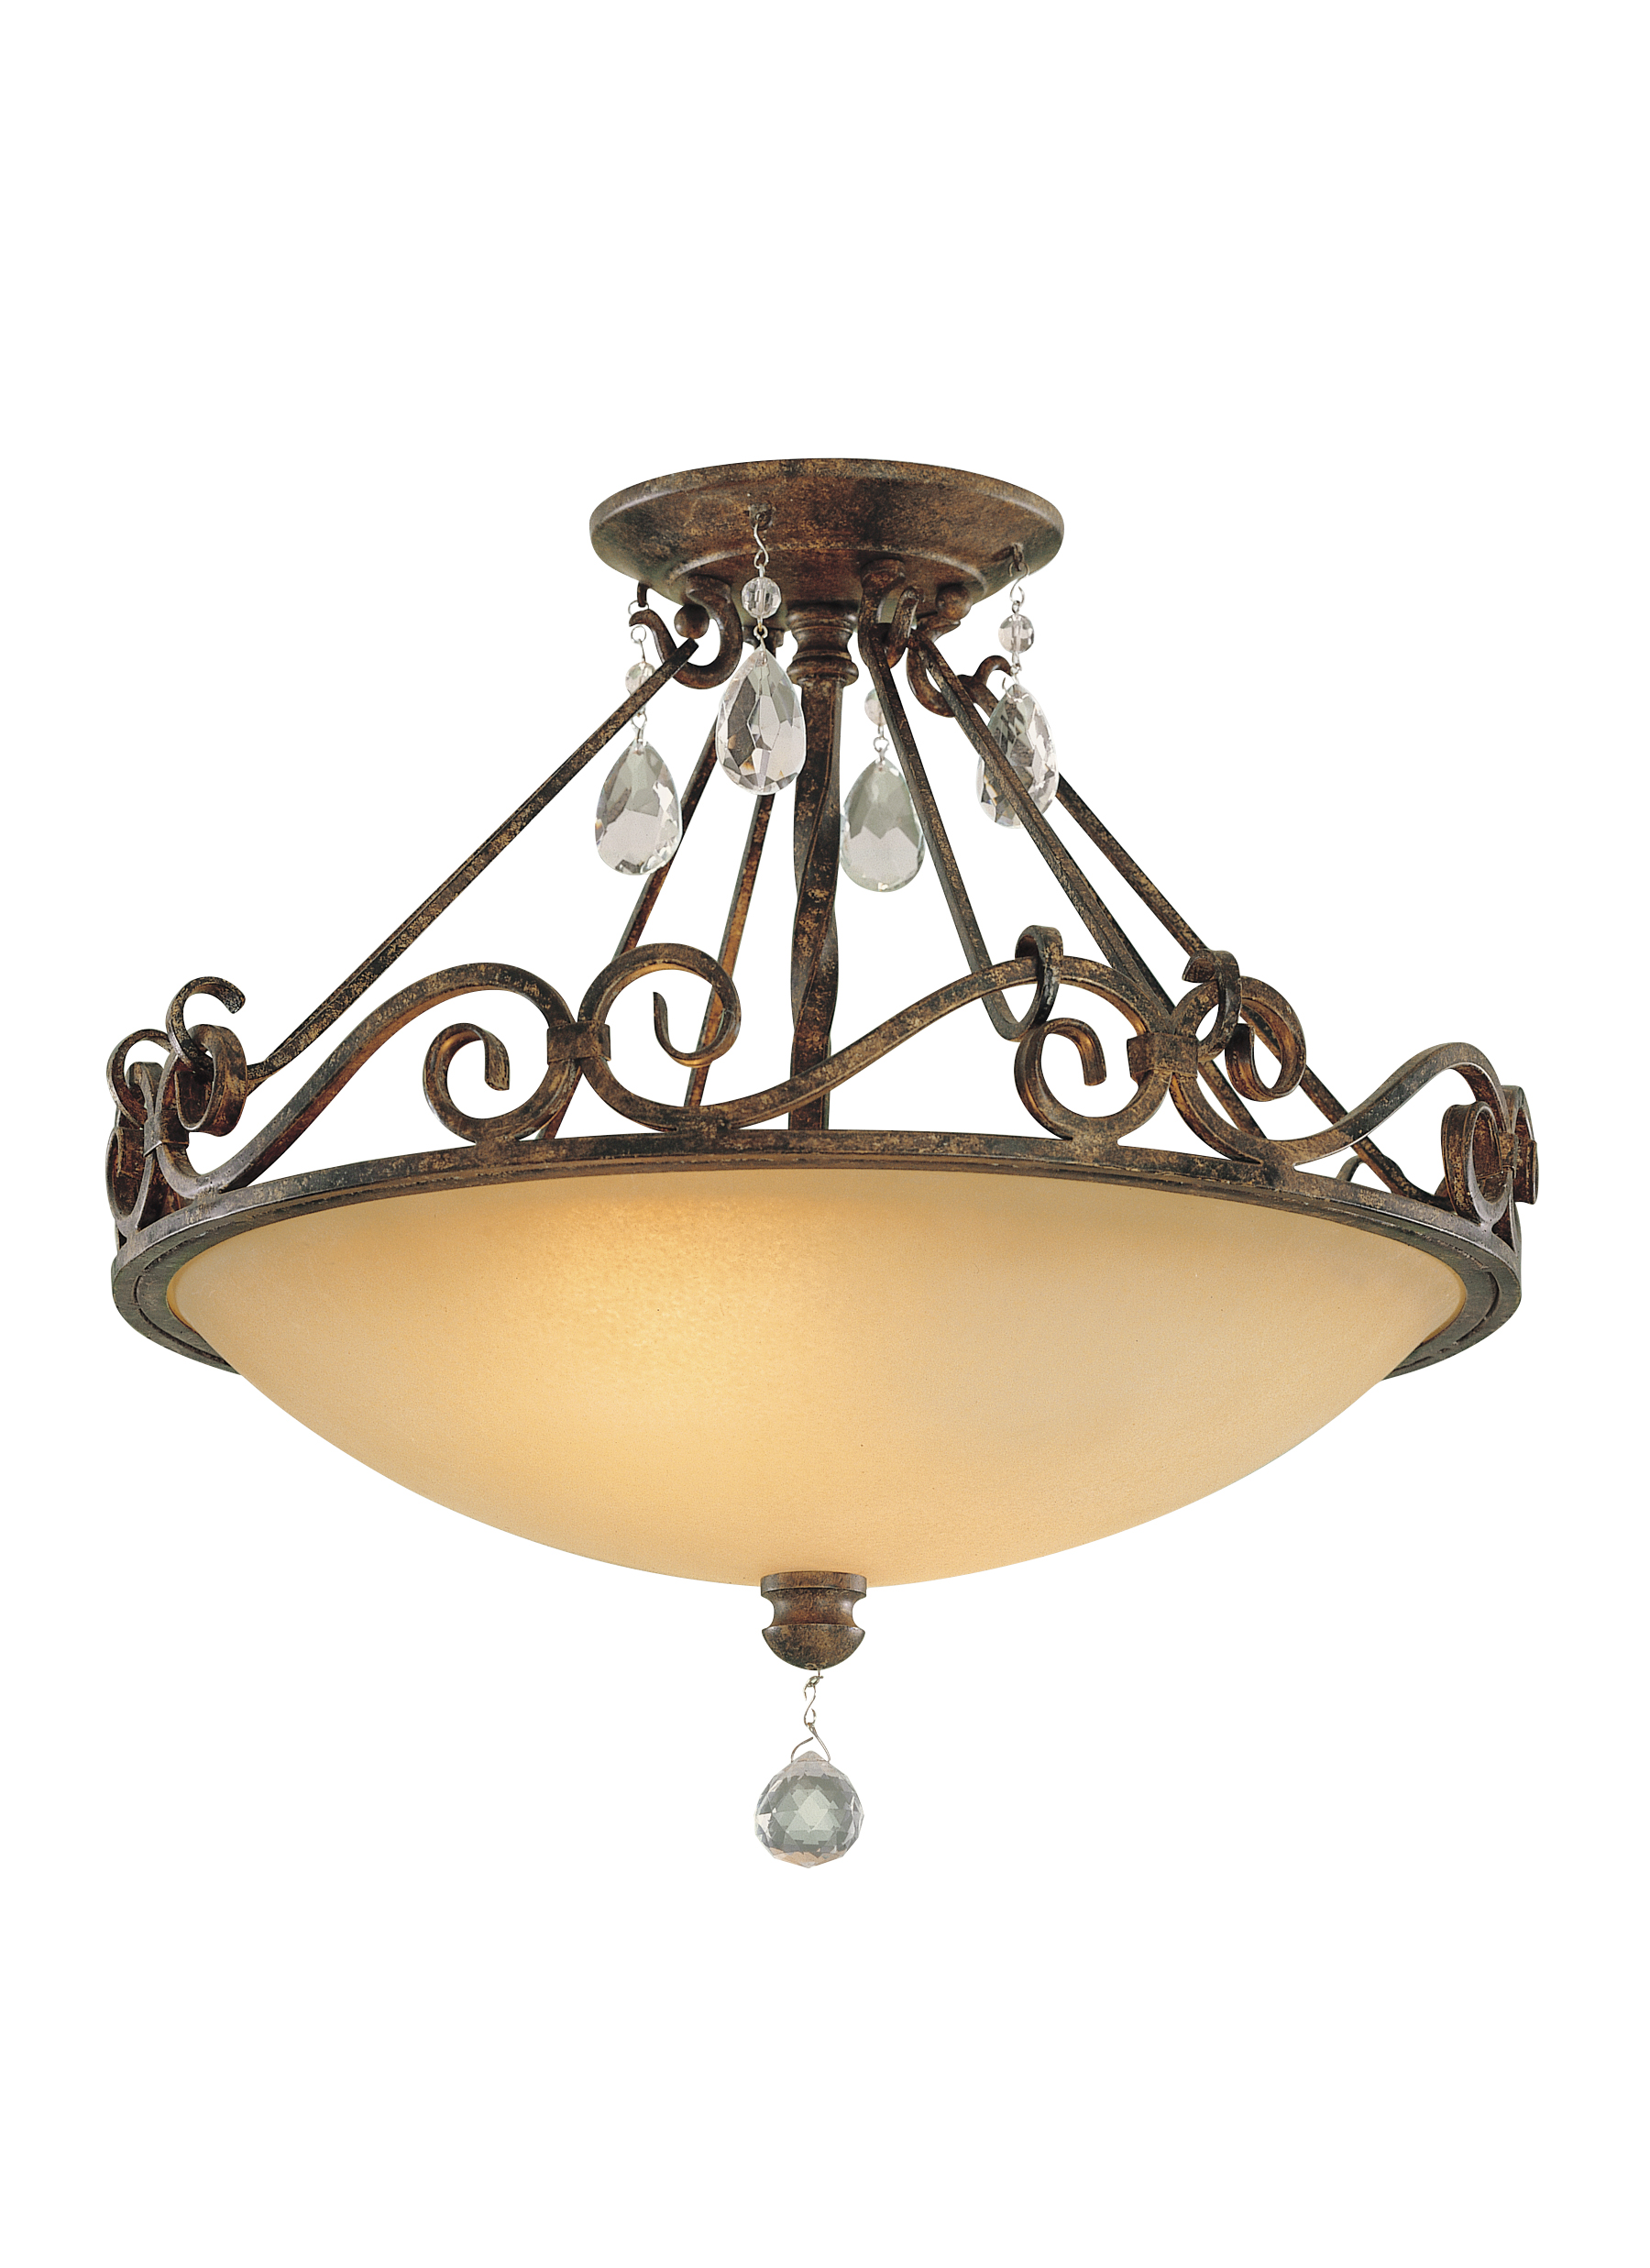 Chateau from feiss chateau collection 2 light indoor semi flush mount aloadofball Images